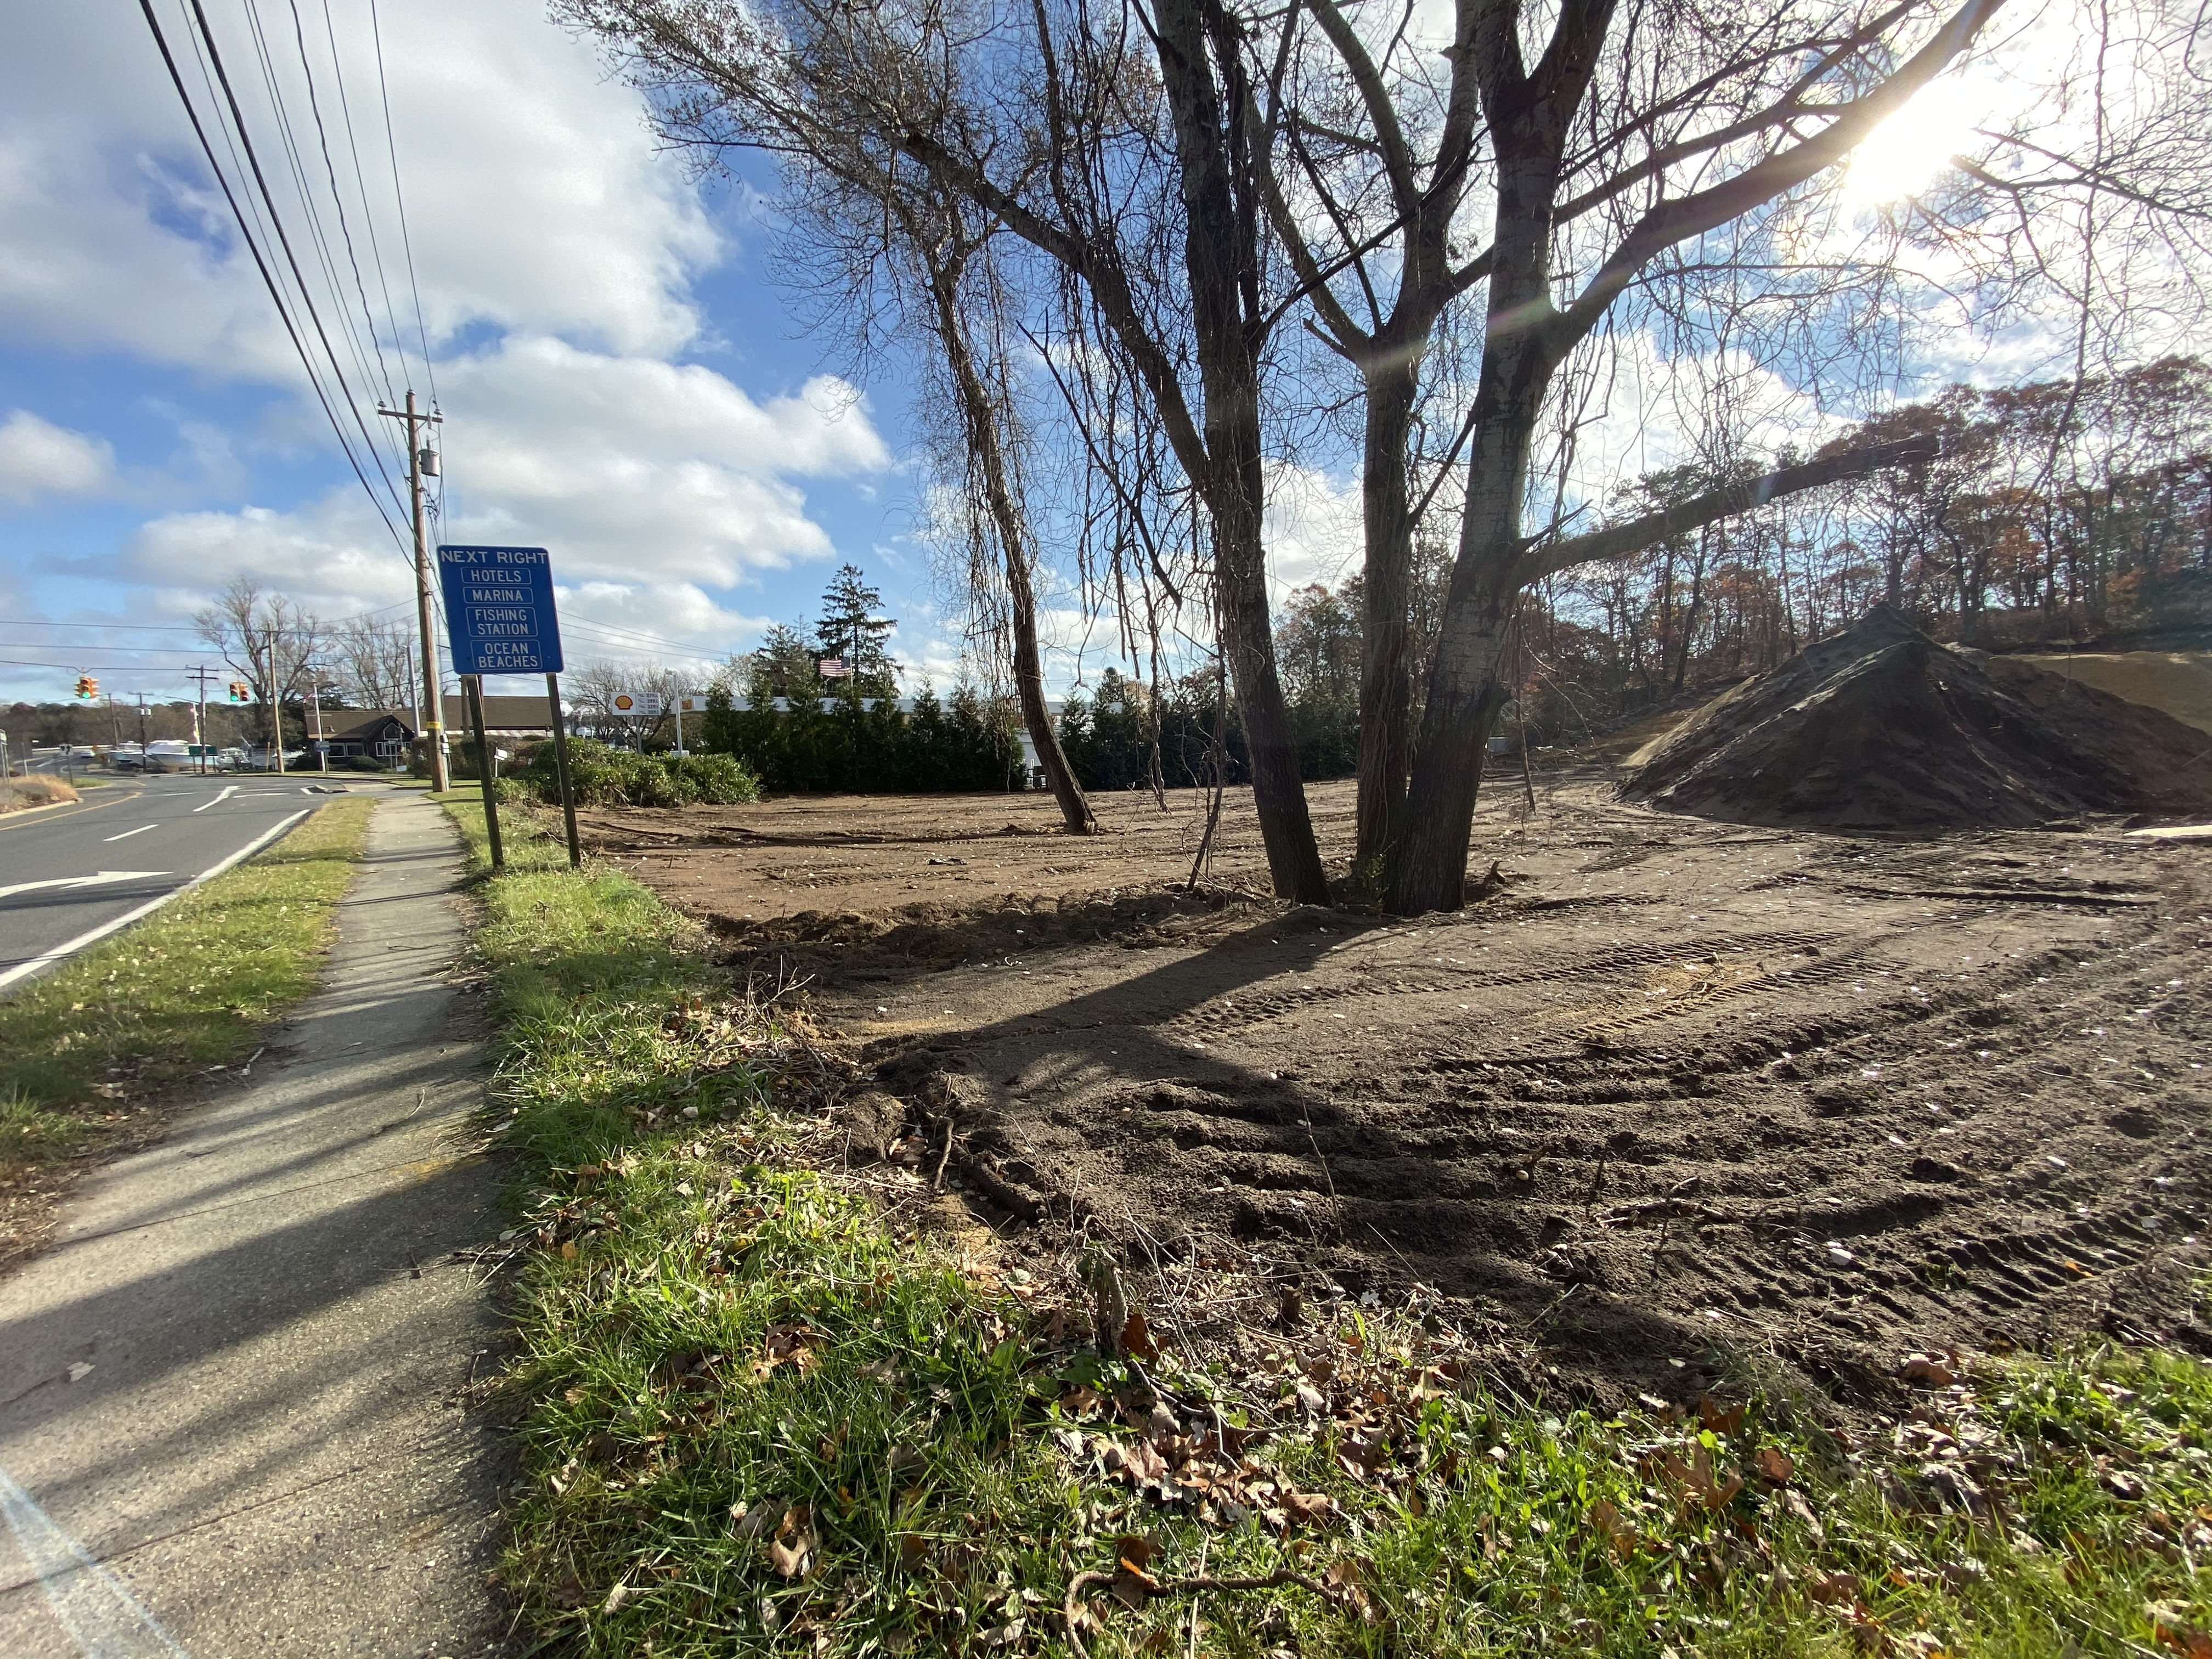 A large swath of land was cleared at a property on East Montauk Highway in Hampton Bays. The Southampton Town Building Inspector issued a stop work order.